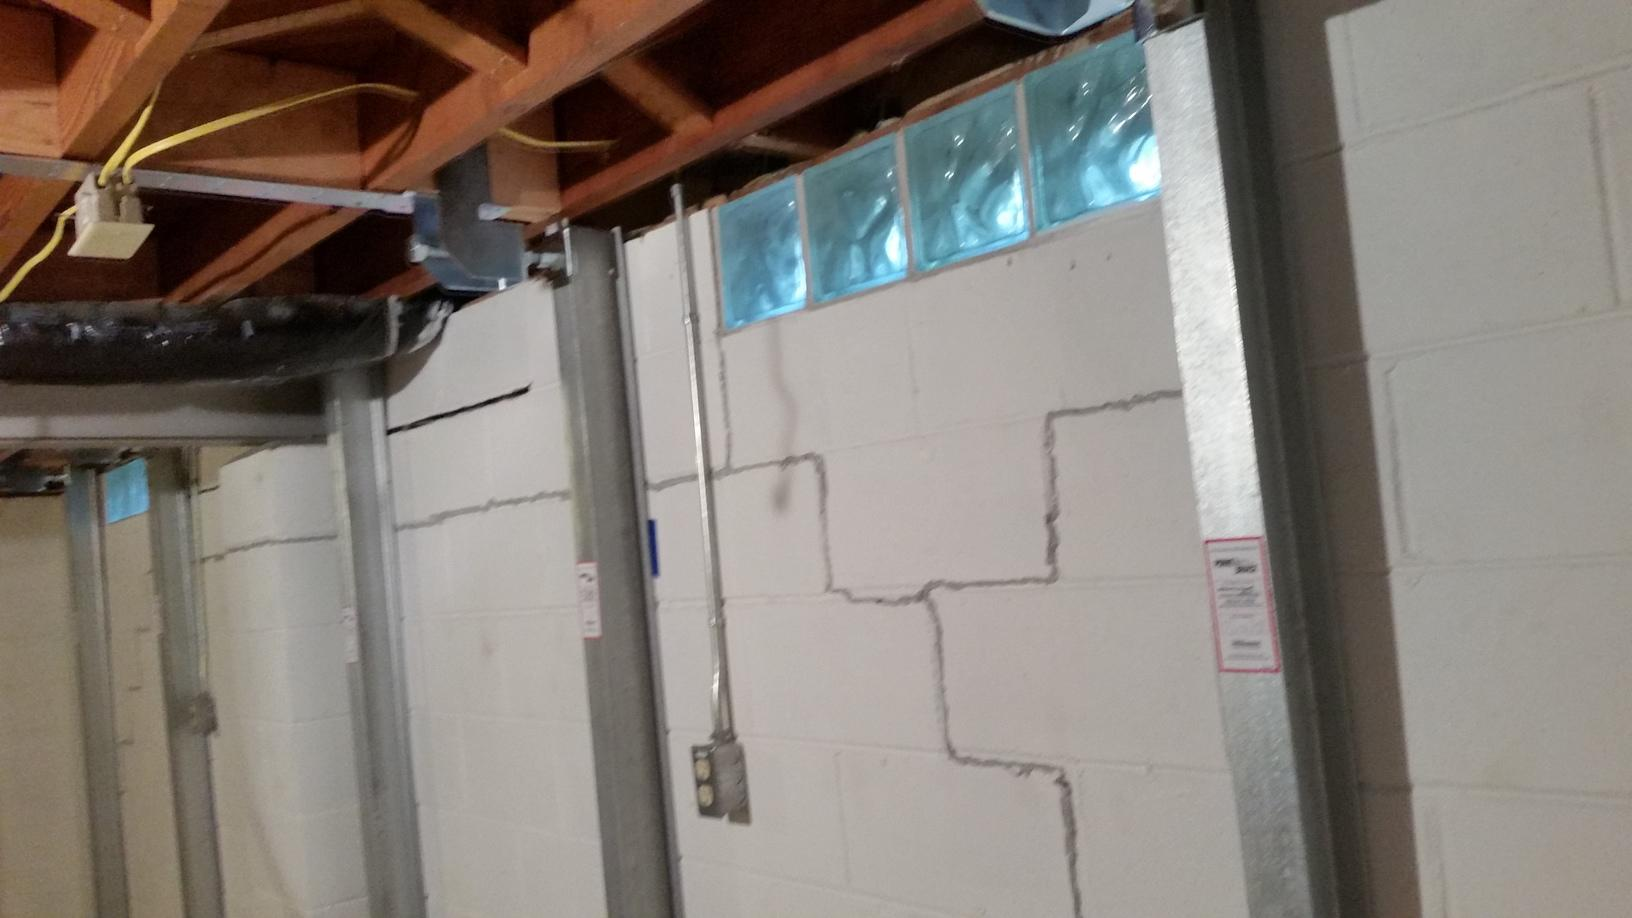 PowerBraces are used to permanently stabilize your walls.